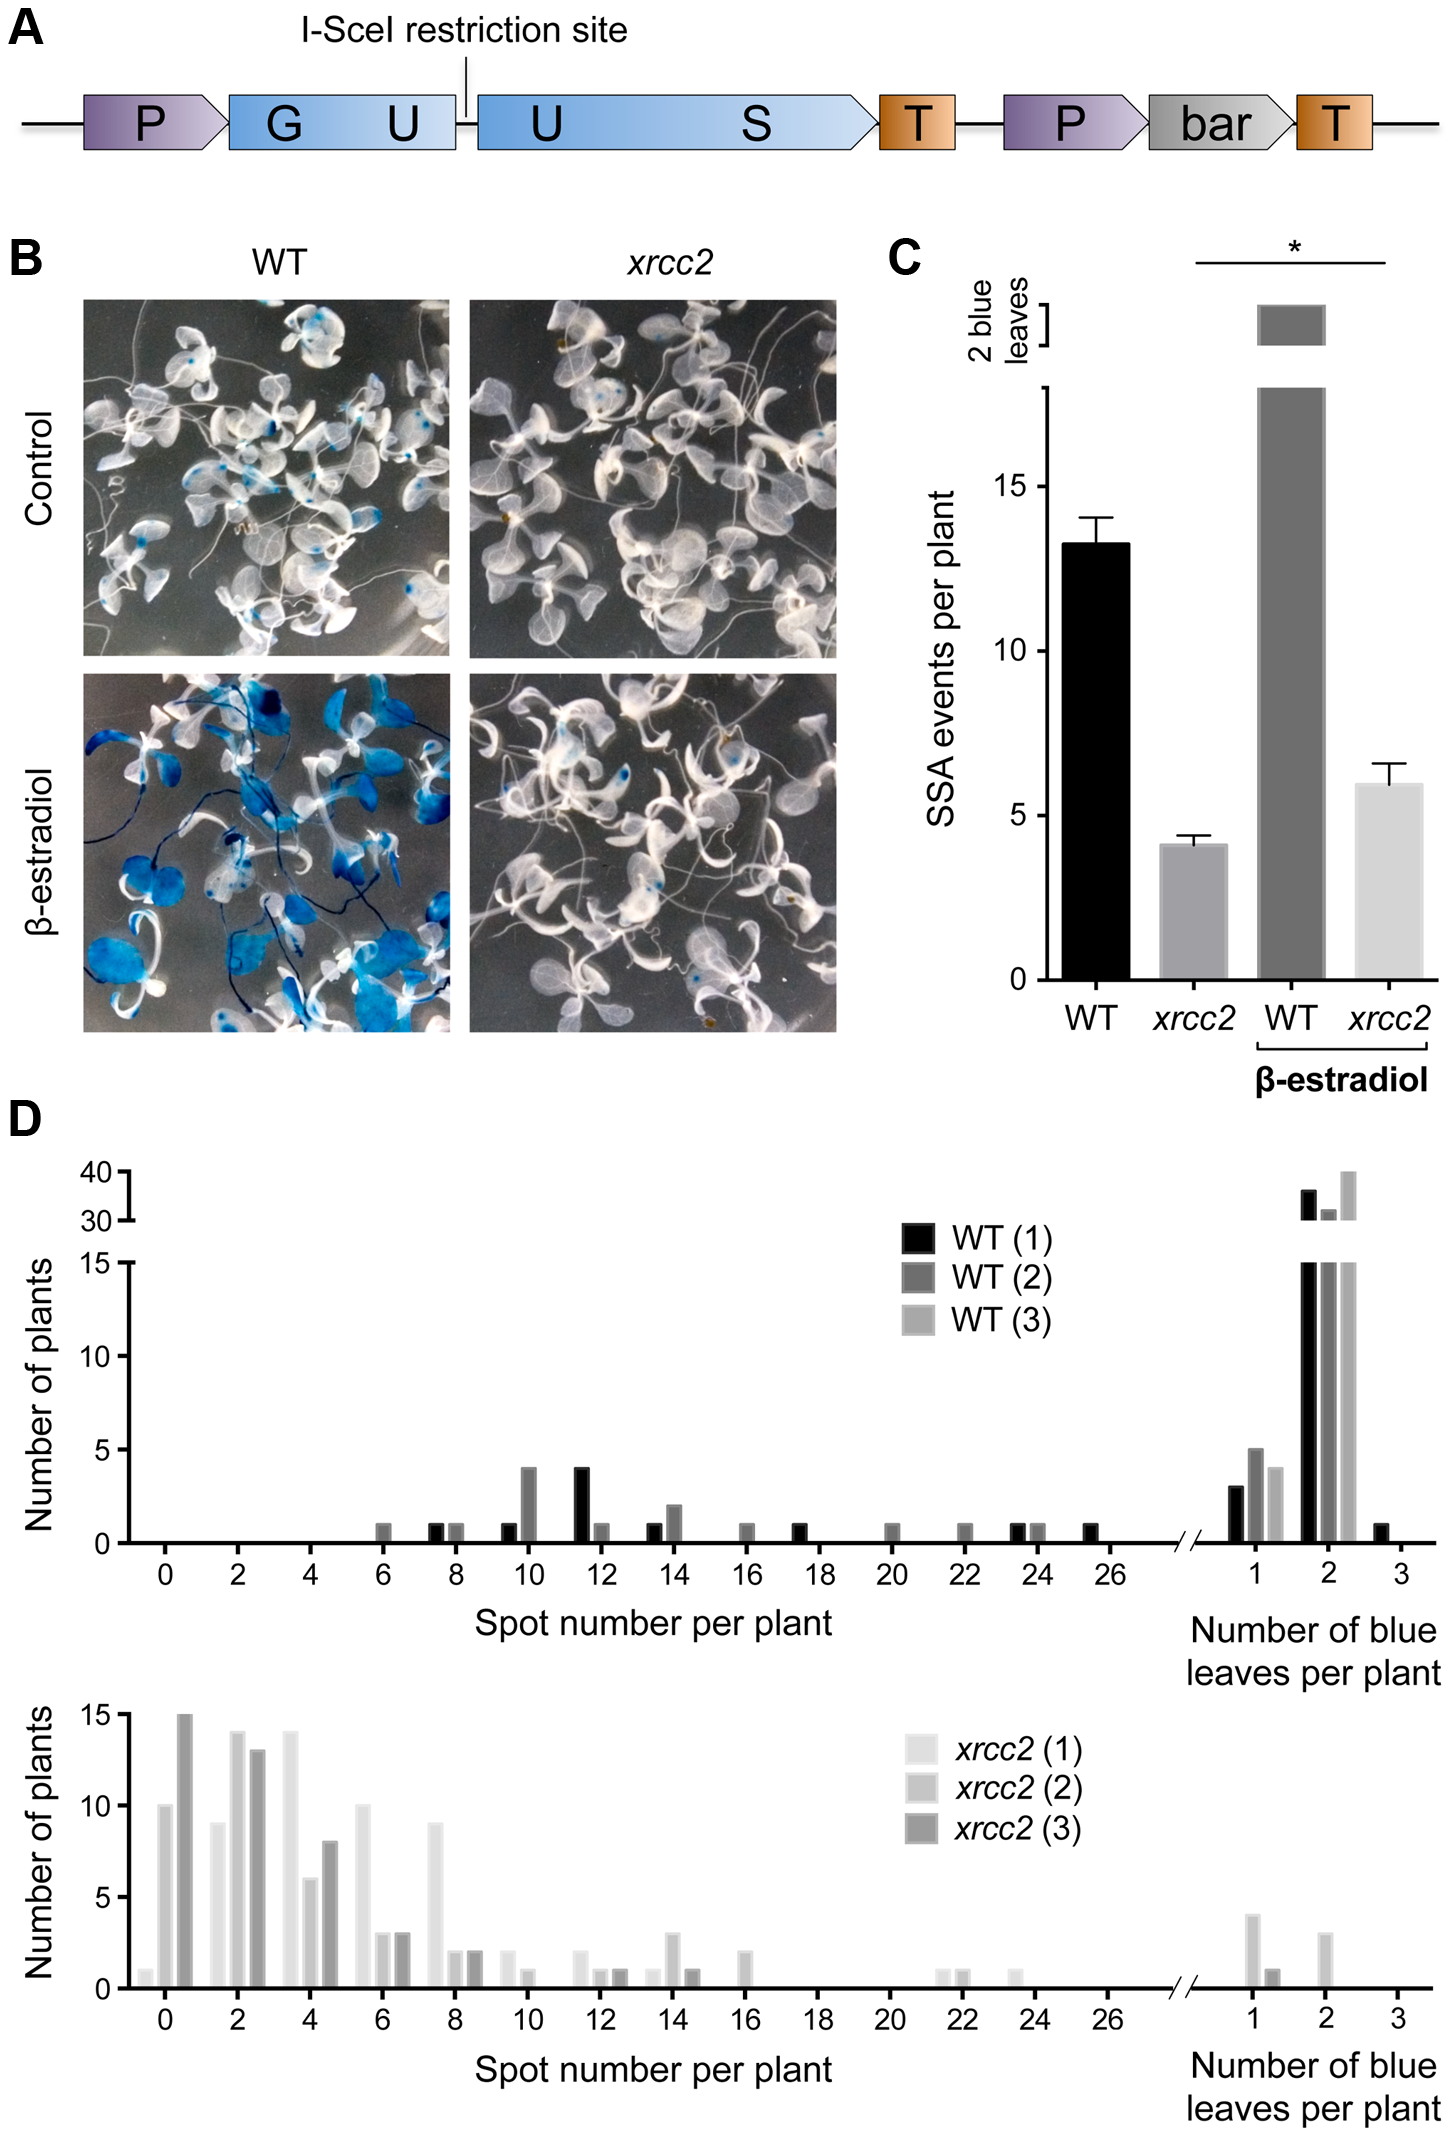 I-SceI induced DGU.US recombination depends upon XRCC2.